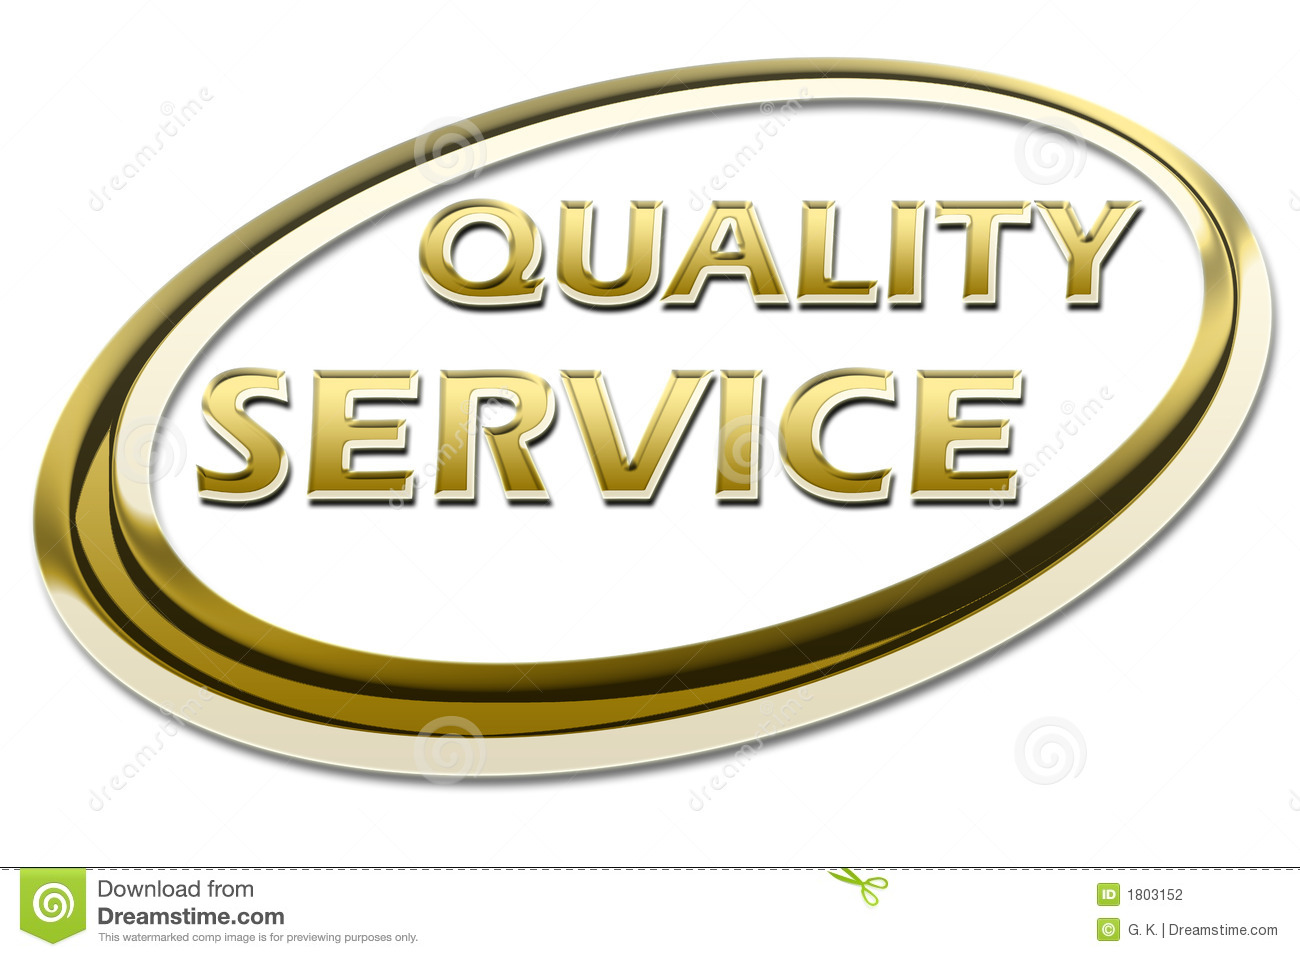 how to use quality of service